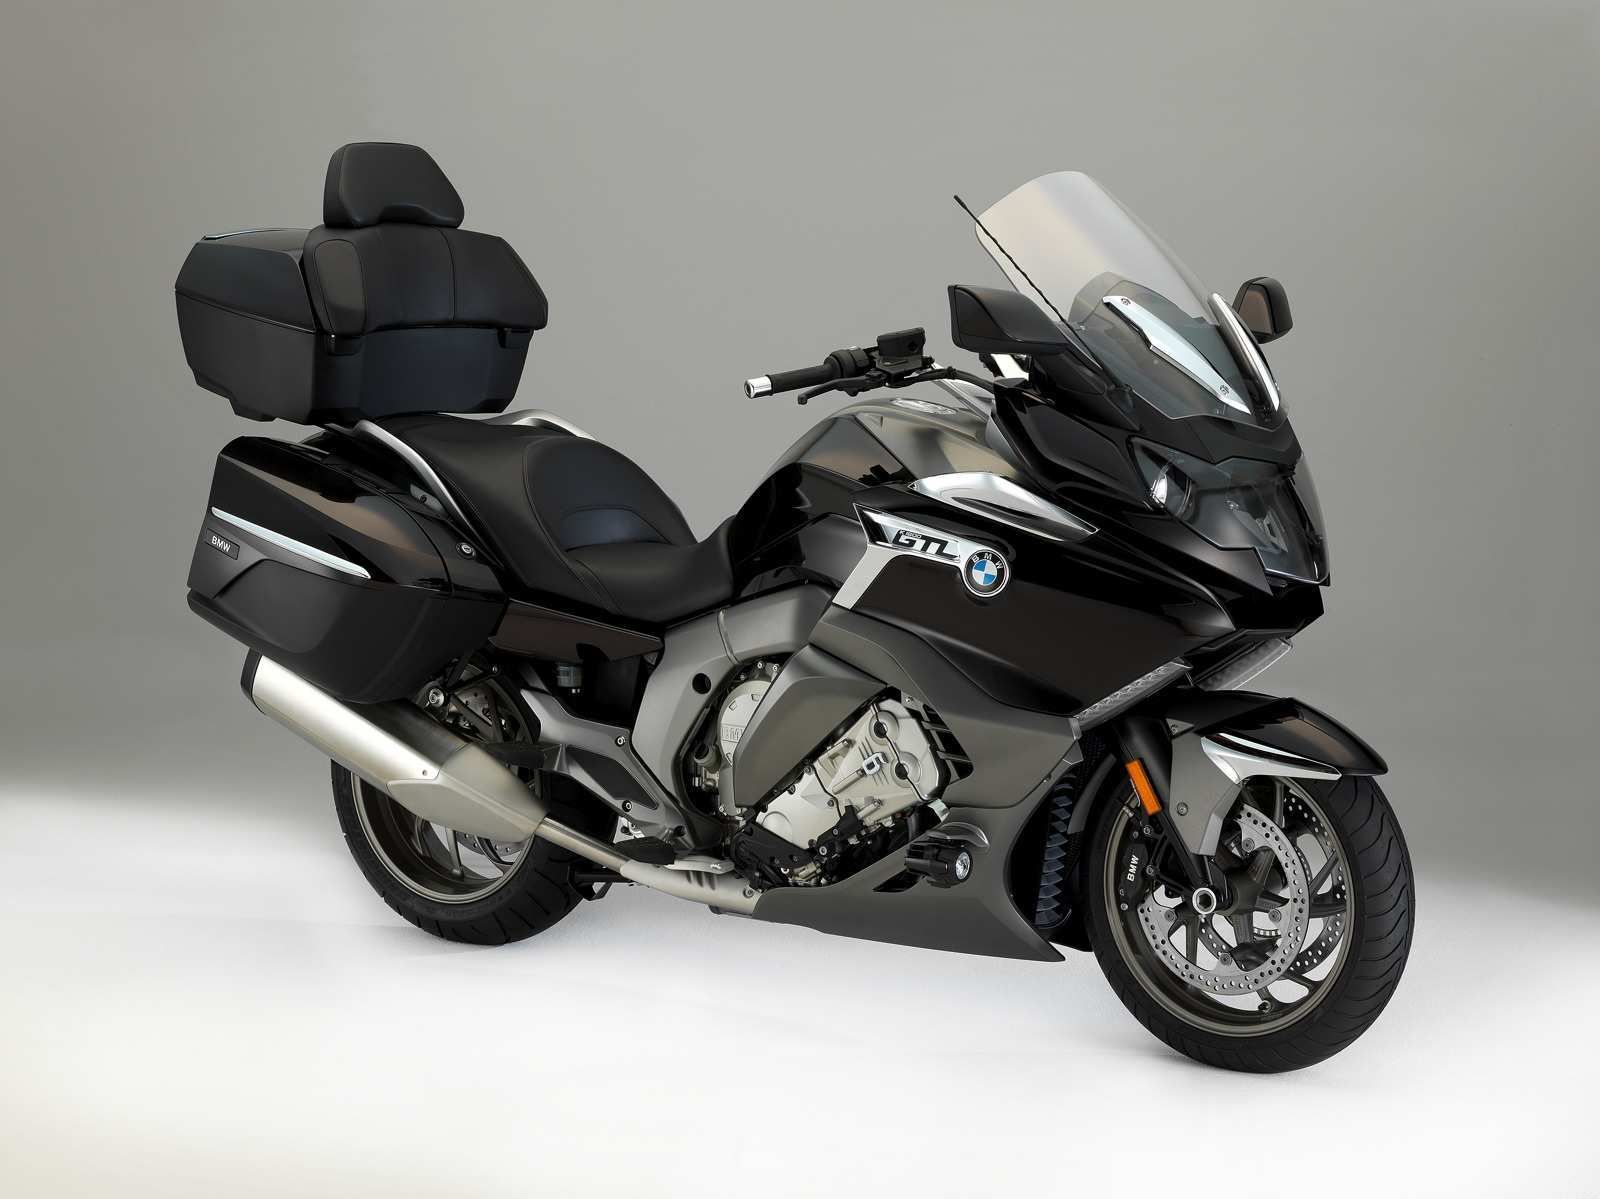 2020 BMW K1600 Rumors | Auto Review